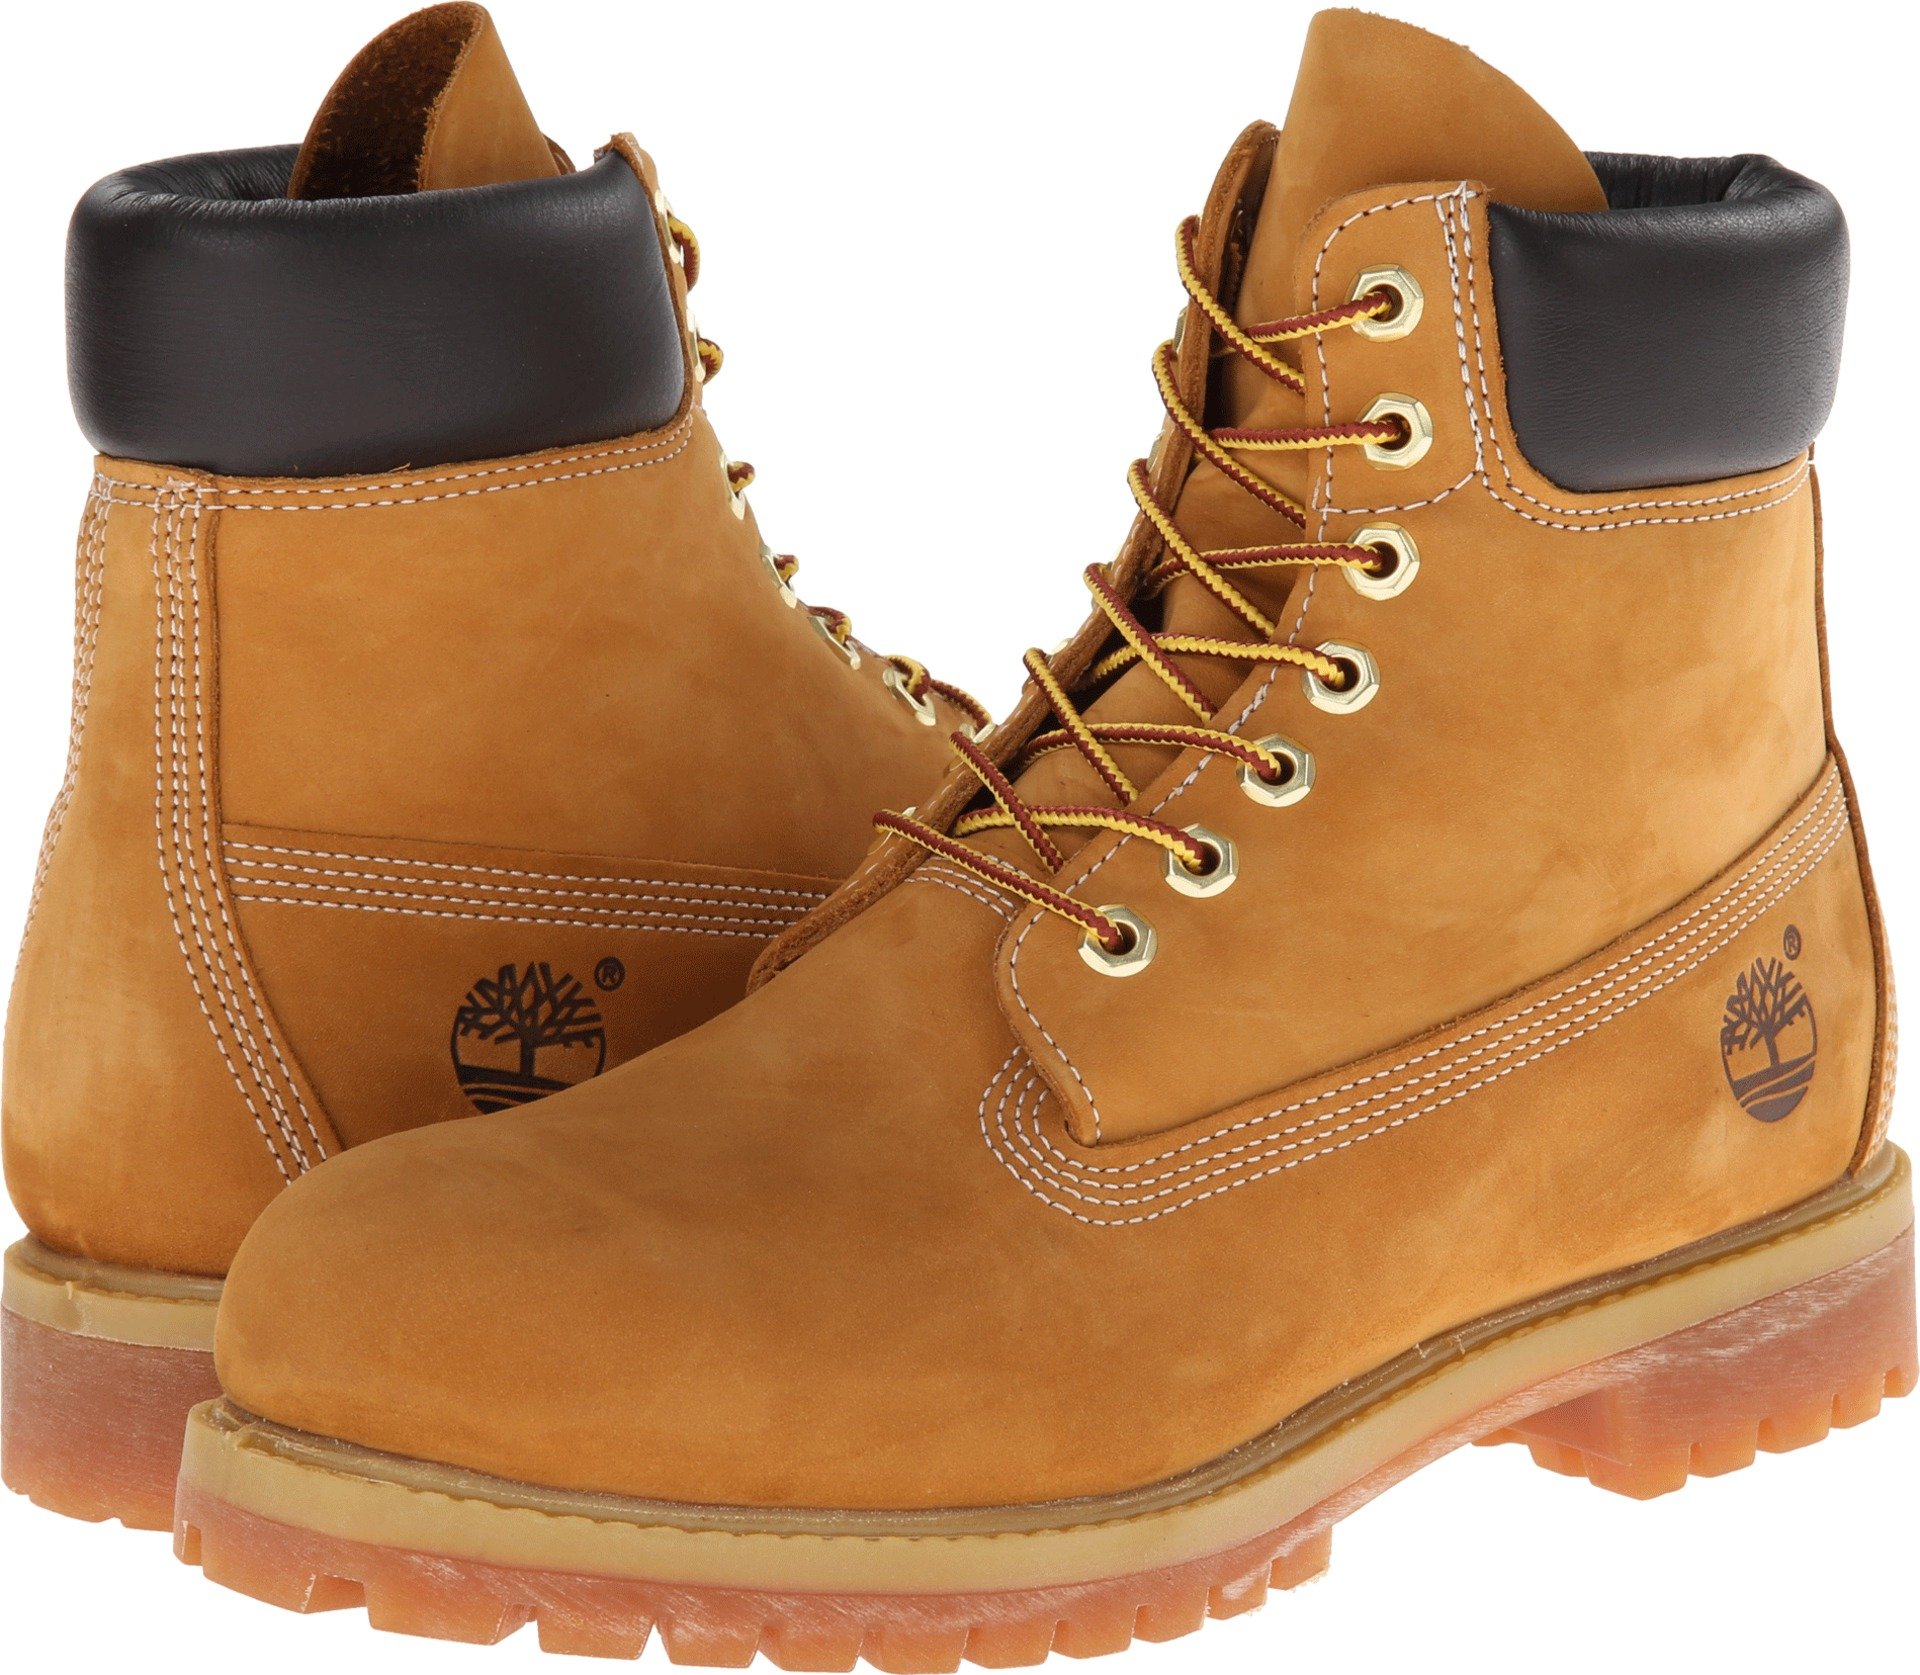 Timberland Classic 6 Quot Premium Boot Wheat Nubuck Leather